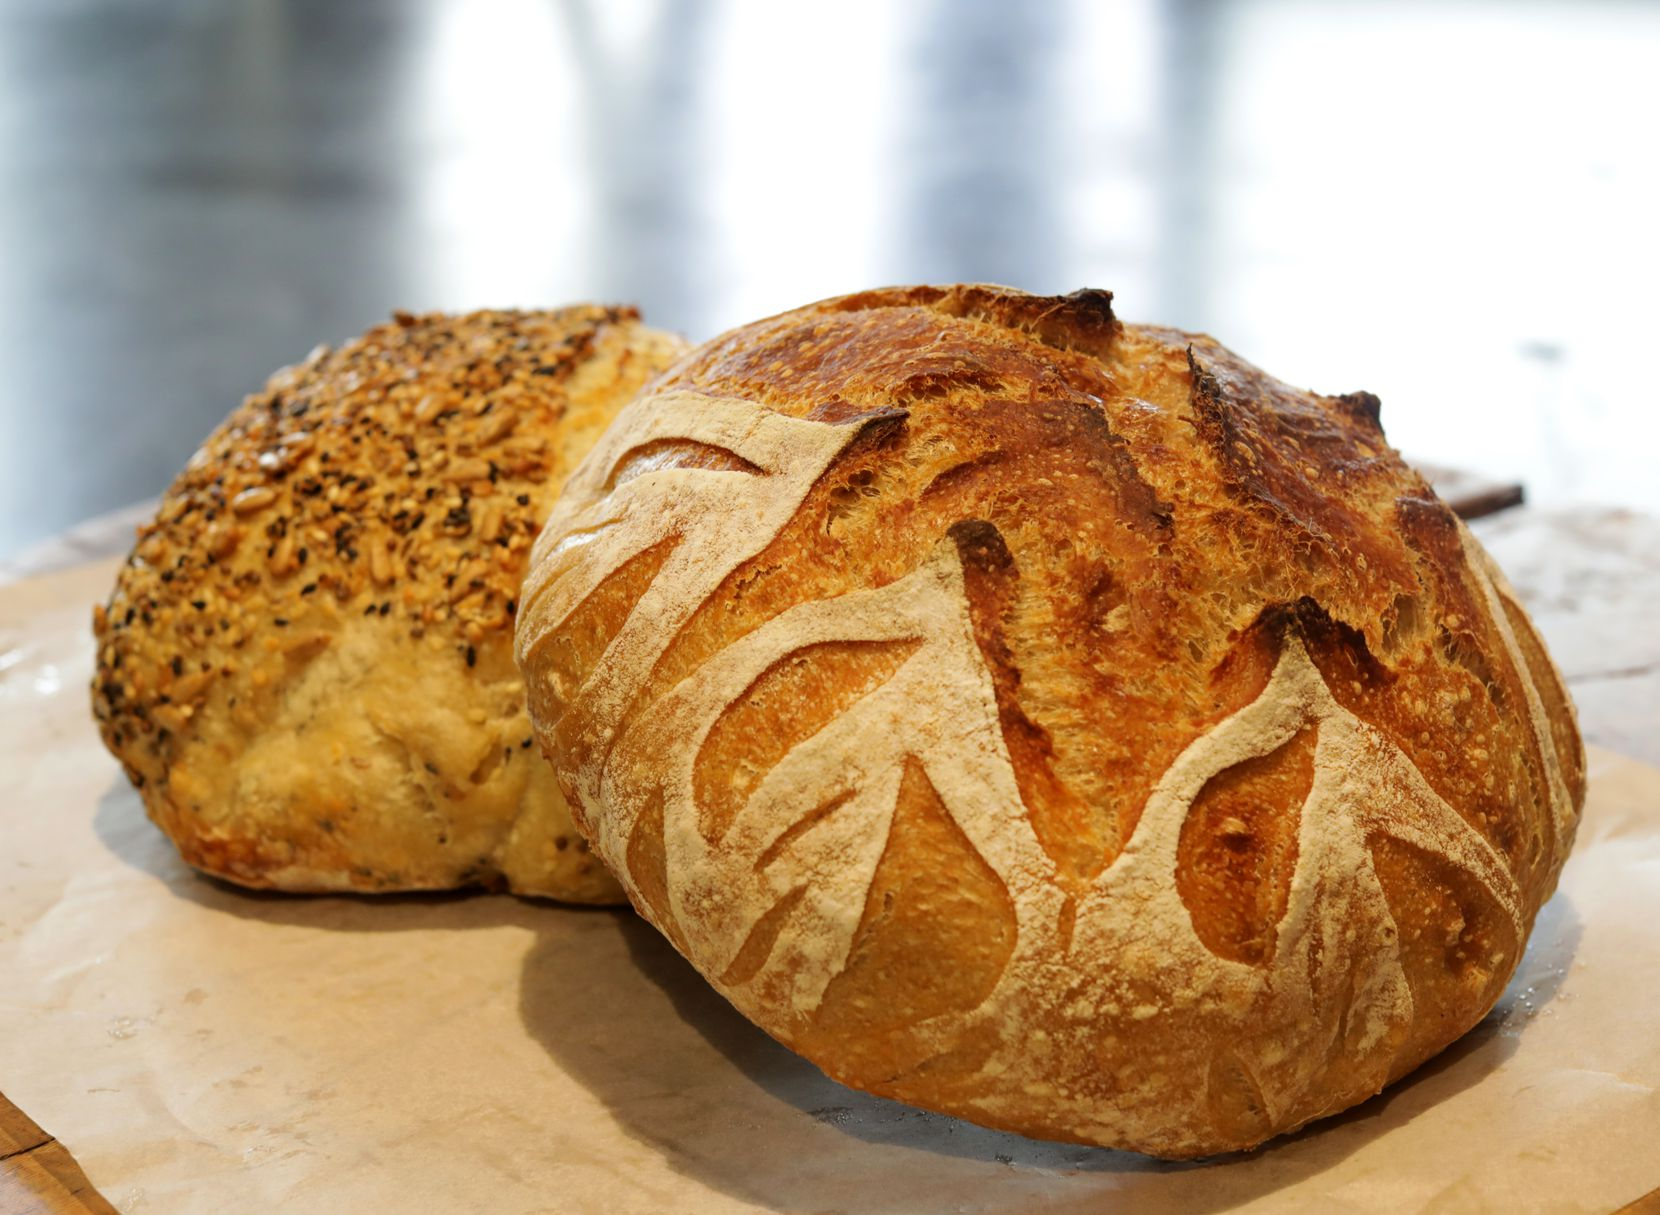 The Seeded Semolina, left, and Einkorn Mesquite sourdough bread offered by Girl With Flour during pop-up shop events at Mudleaf Coffee in Plano